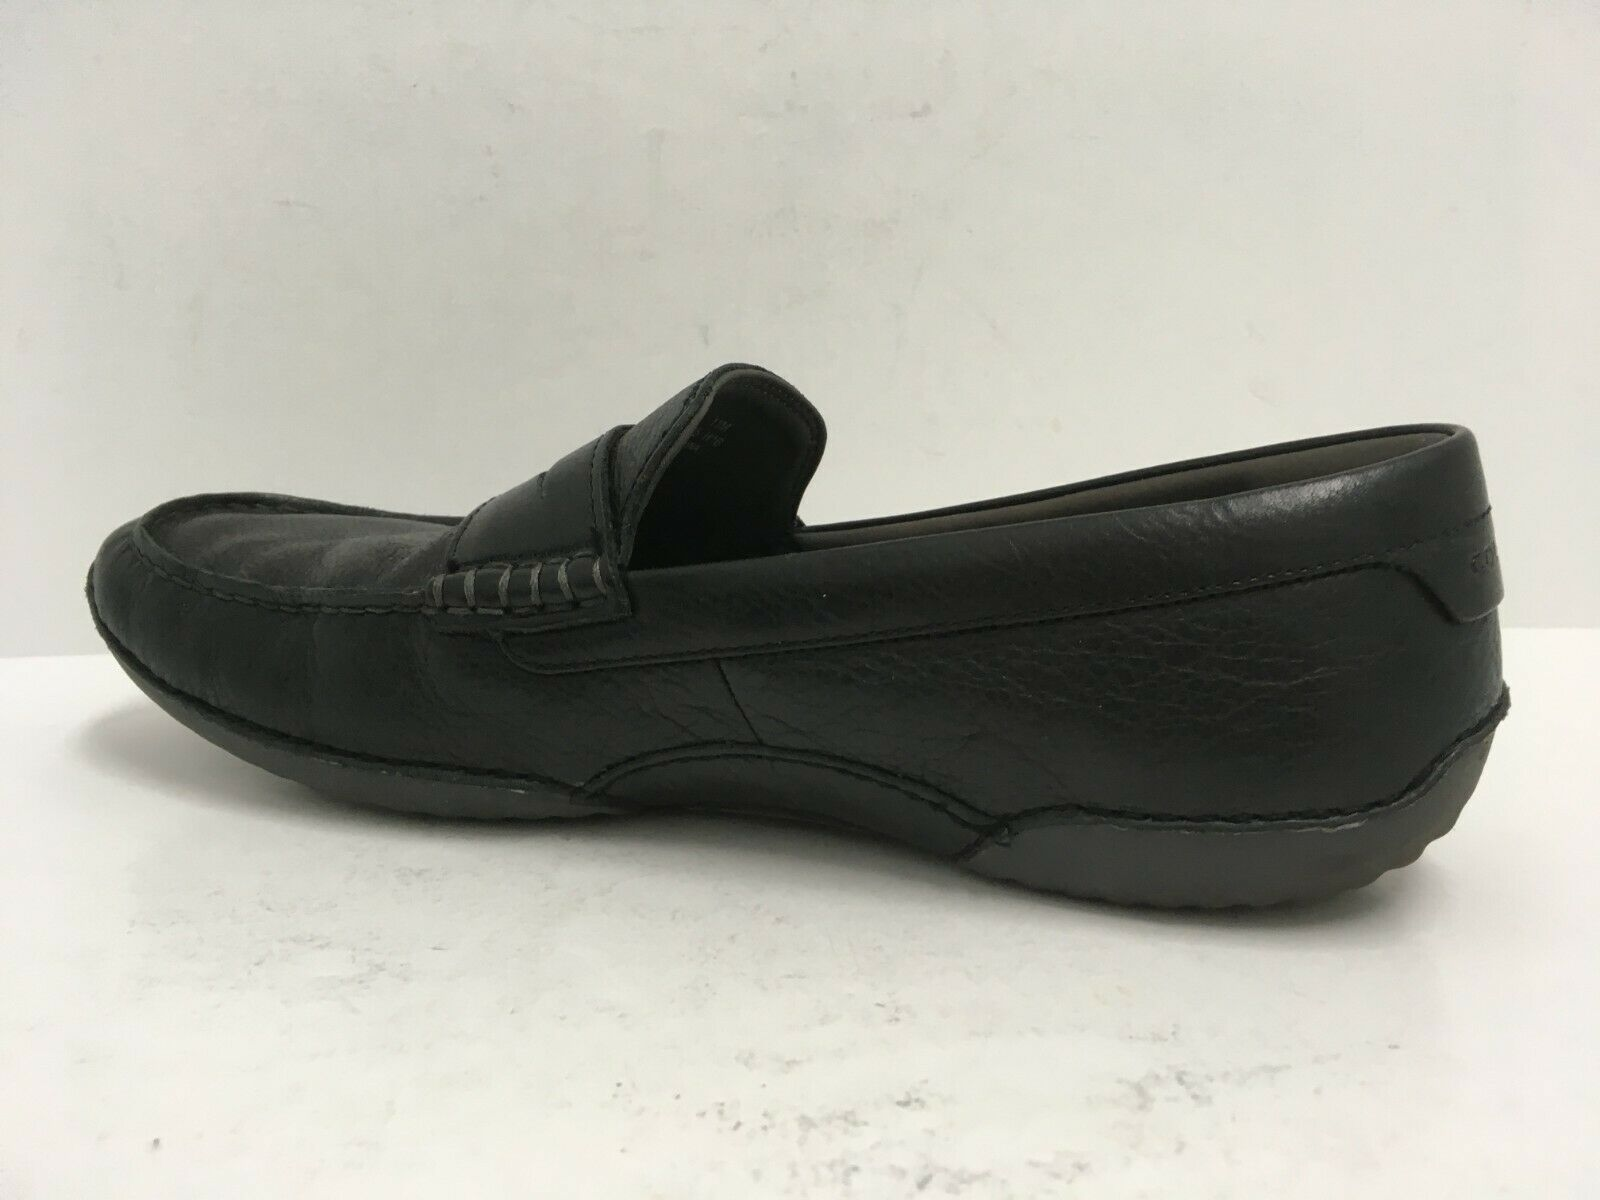 Cole Haan Men's MOTOGRAND Penny Loafer Black Leather Driving Shoes Size 11M GUC image 5